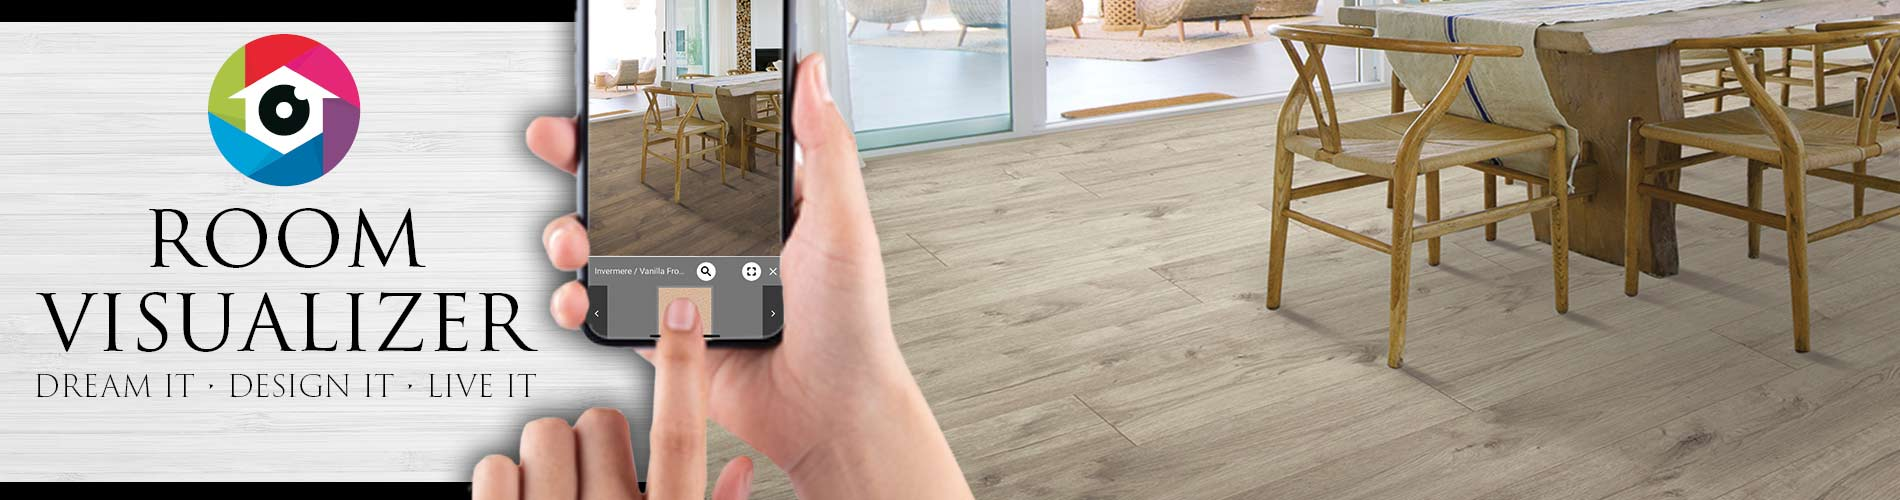 Reinvent your room with new flooring using our Room Visualizer virtual design tool.